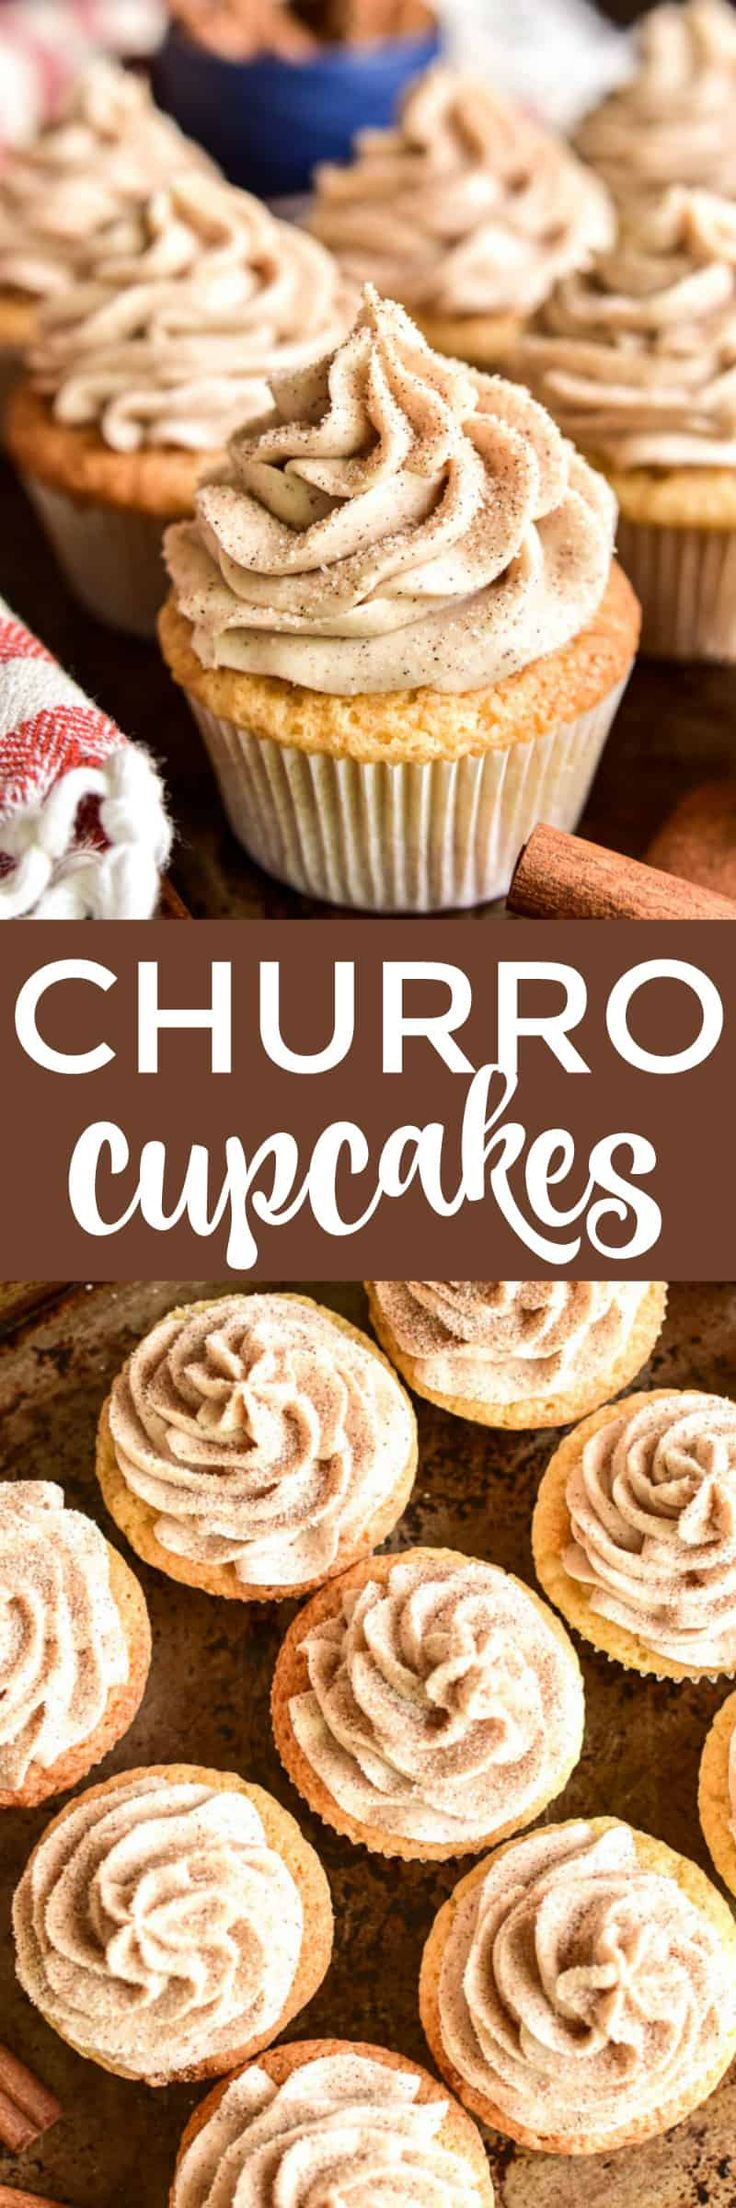 Churro Cupcakes | | Lemon Tree Dwelling